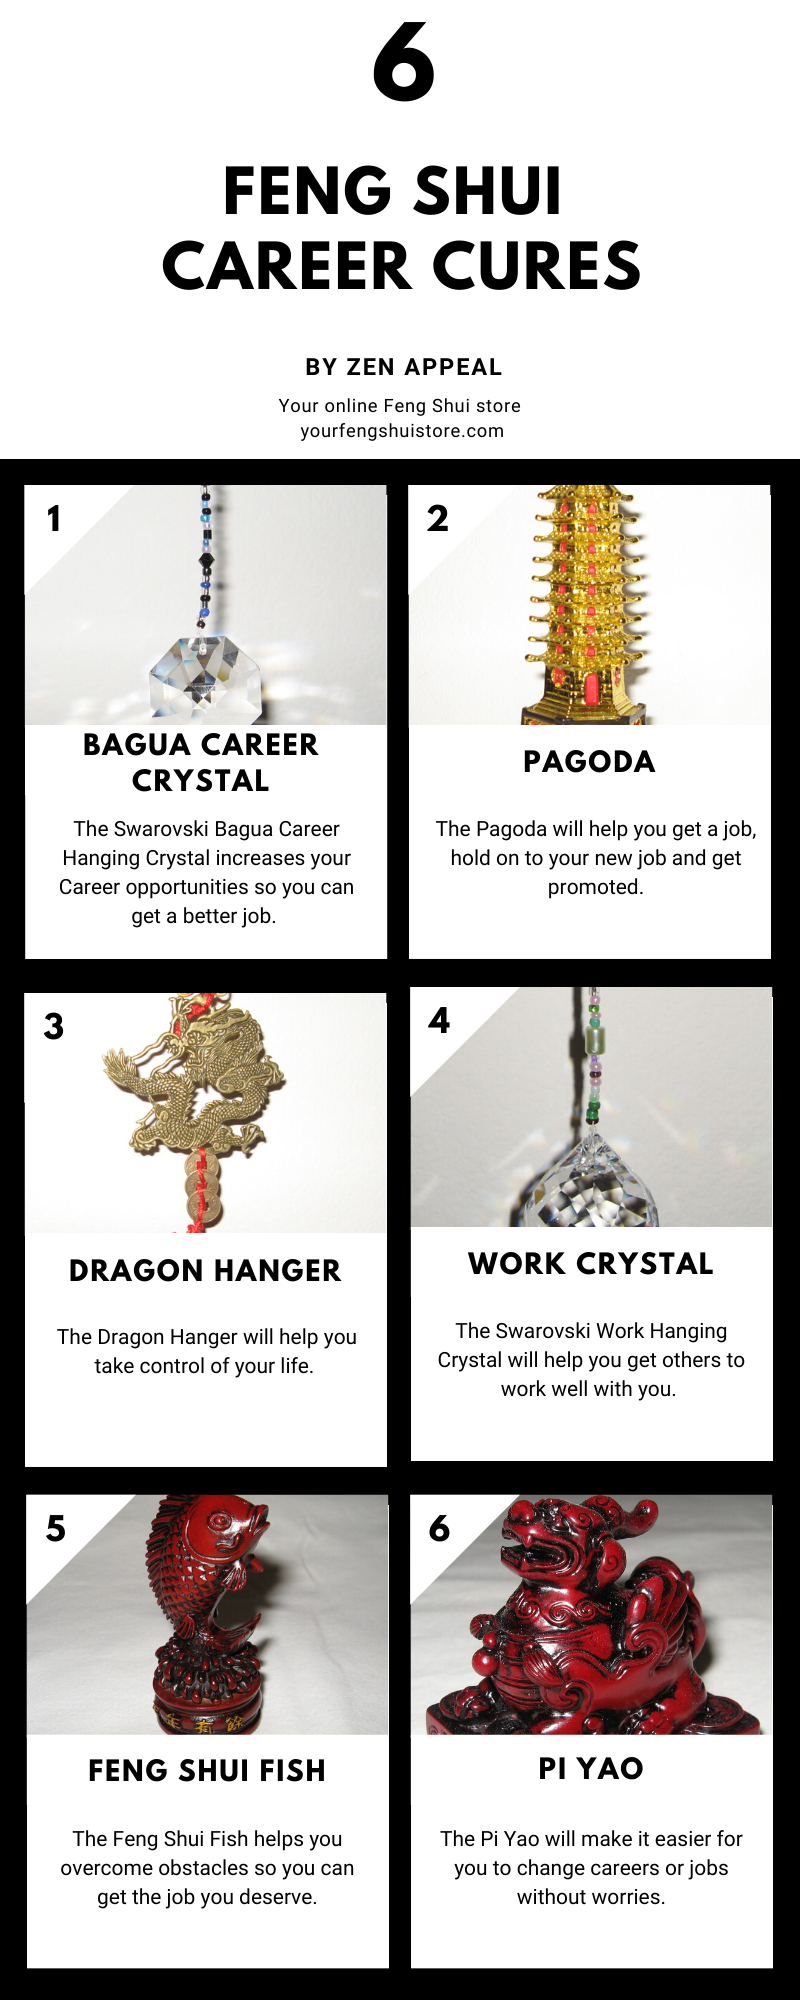 Feng Shui Career Cures